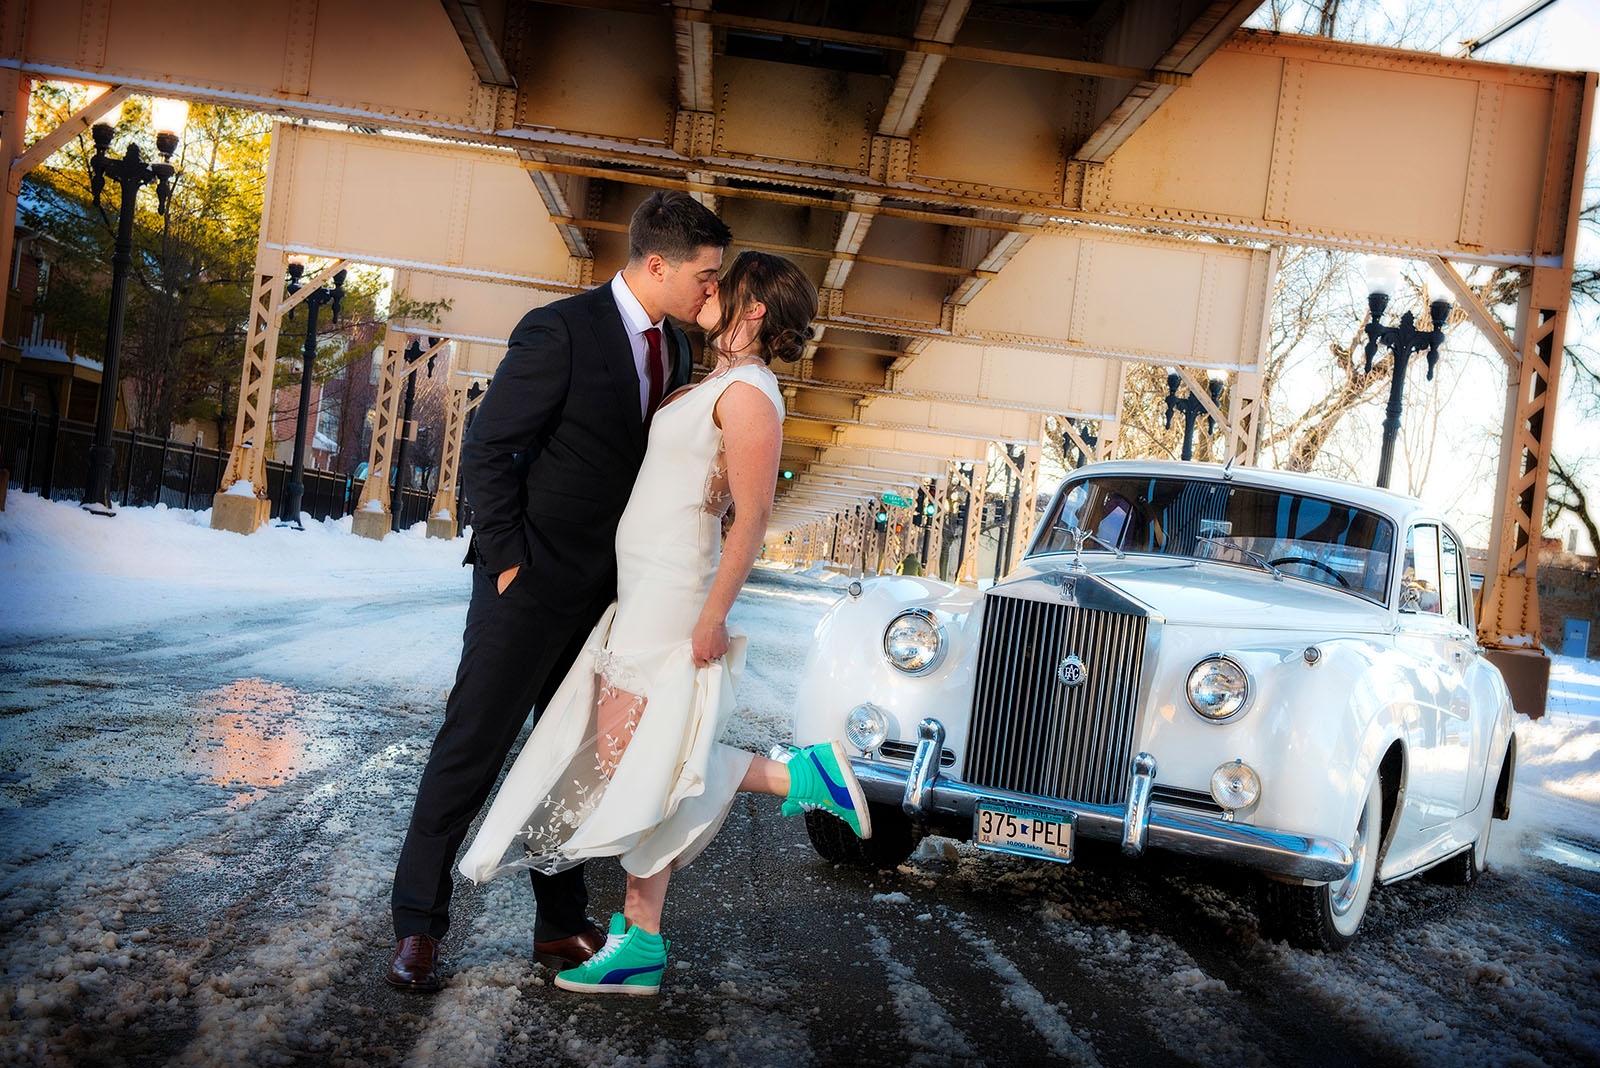 Bride Groom Winter Antique Car Winter Wedding Snow